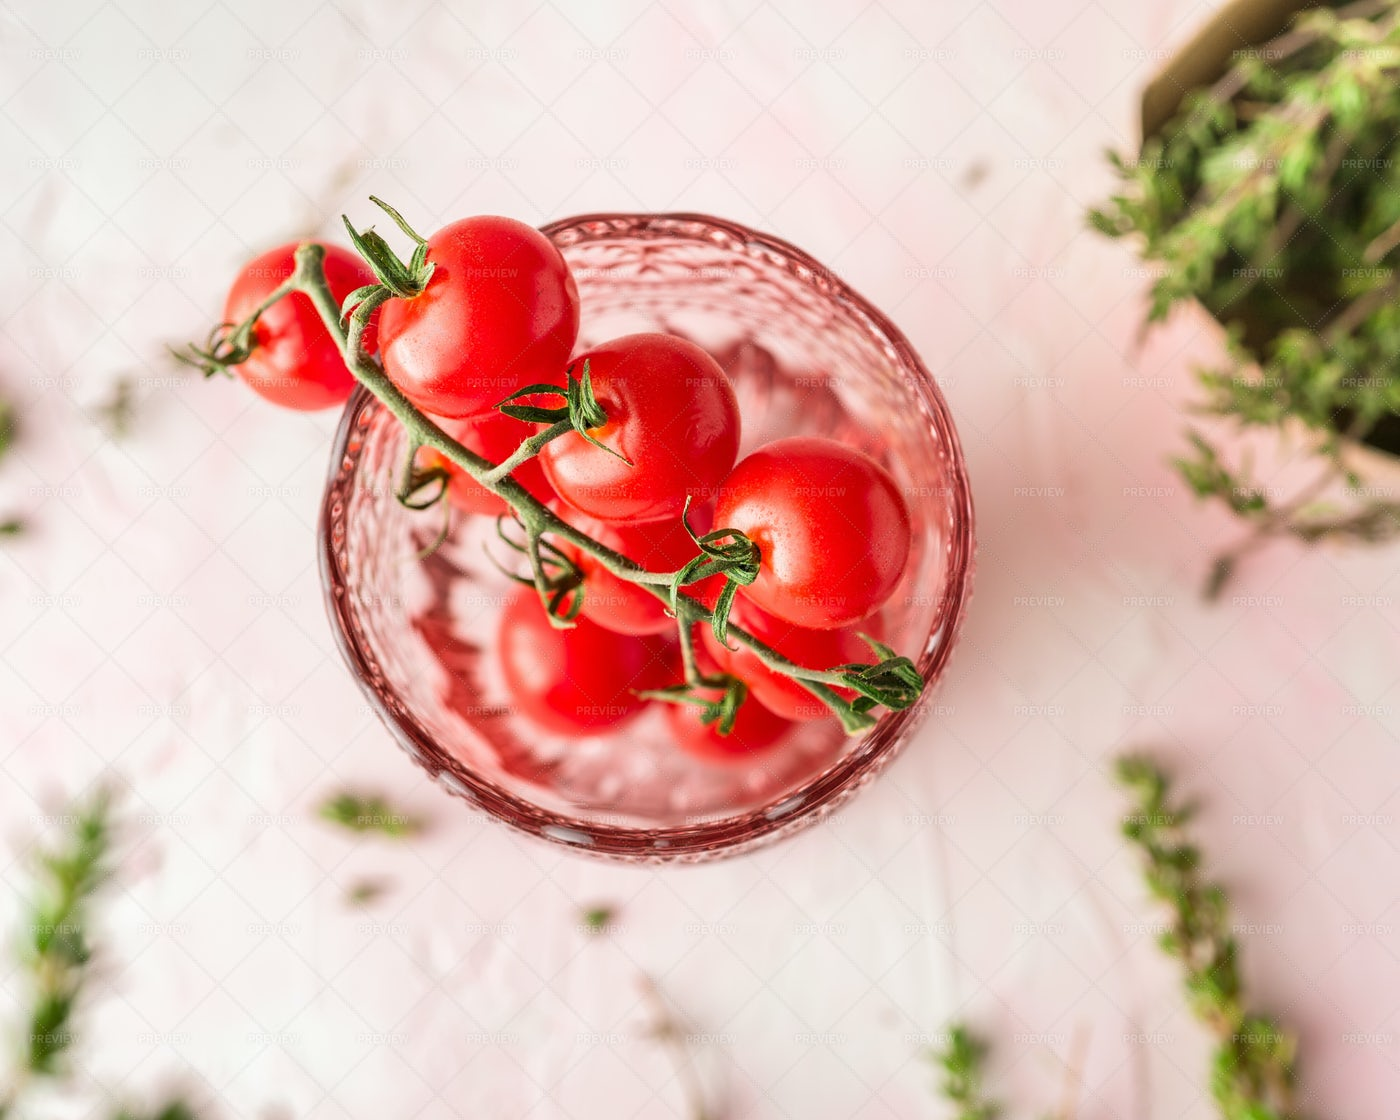 Cherry Tomatoes In A Glass: Stock Photos